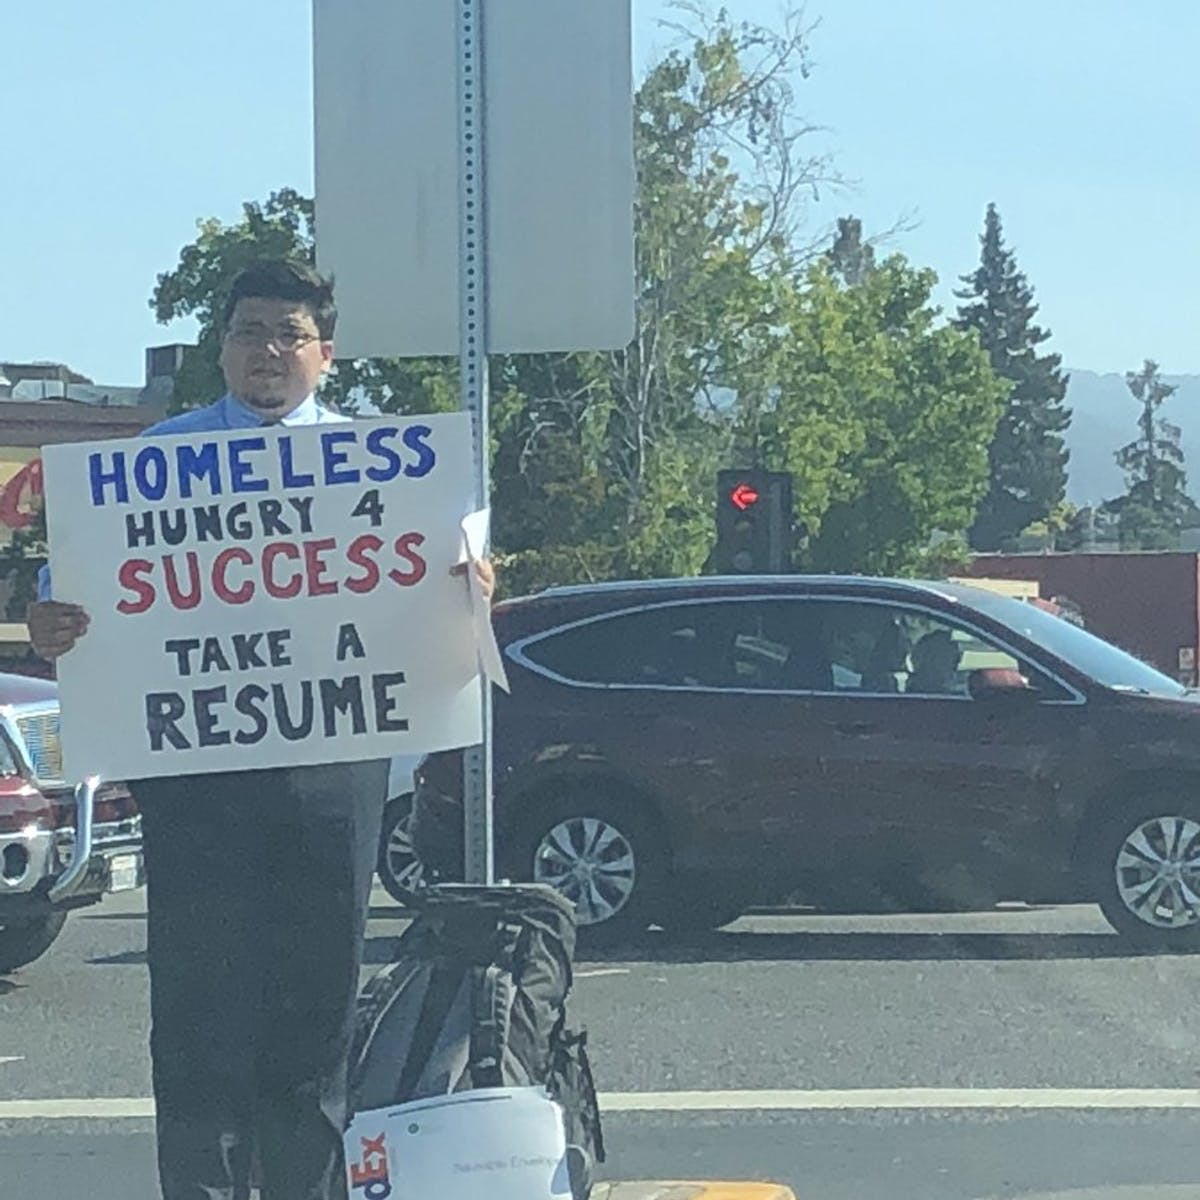 What the Homeless Resume Man Tells Us About Viral 'Feel Good' Memes